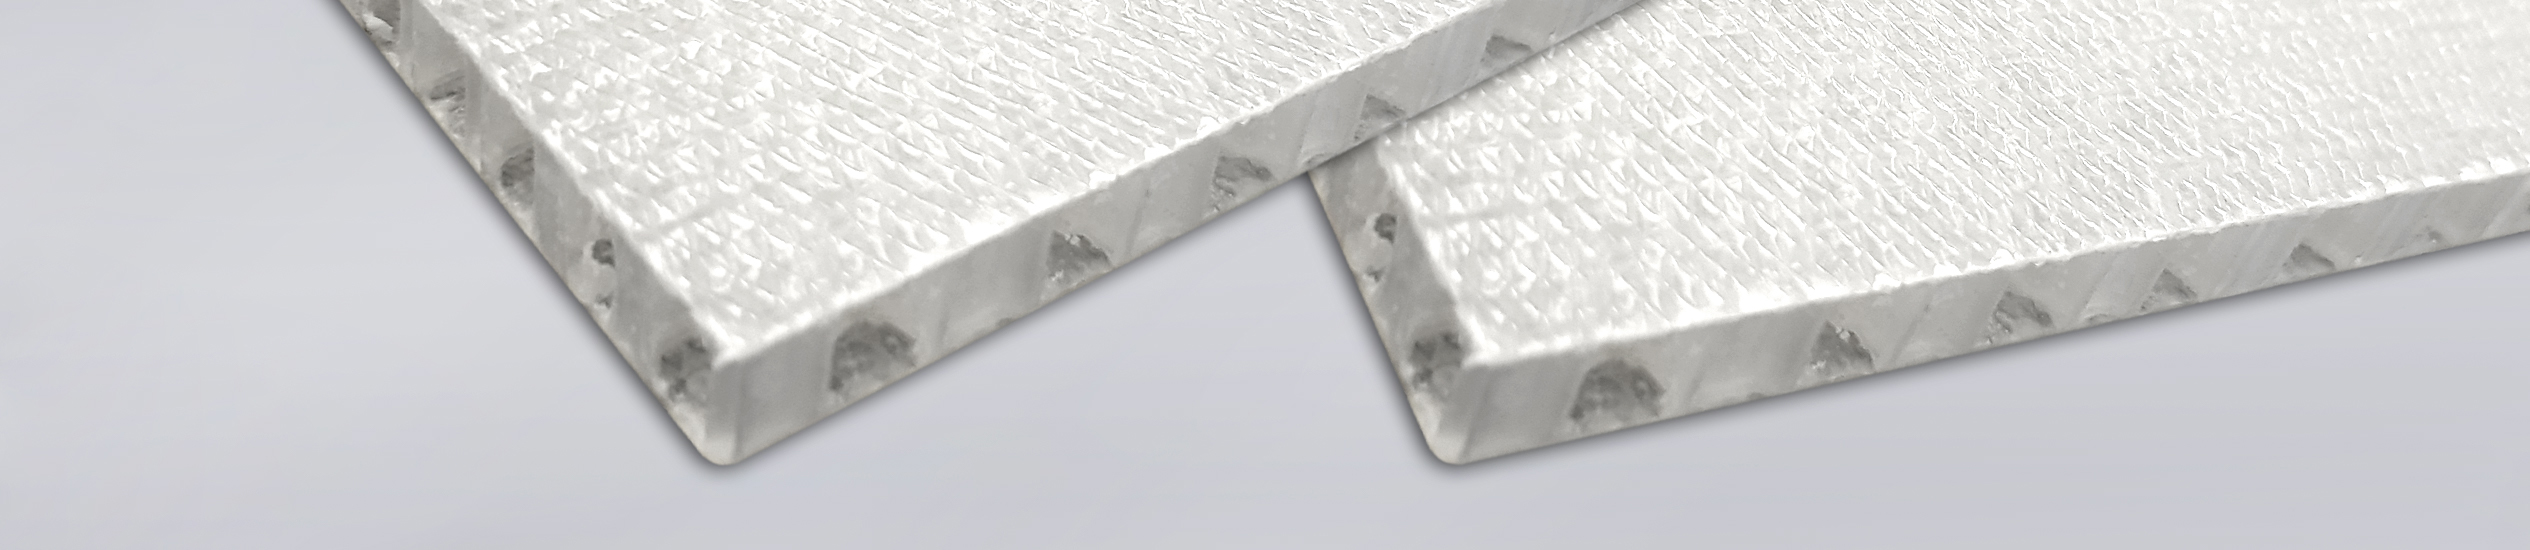 Clearstep  is a lightweight sandwich panel with a core in polypropylene with glass fiber reinforced with epoxy resin.